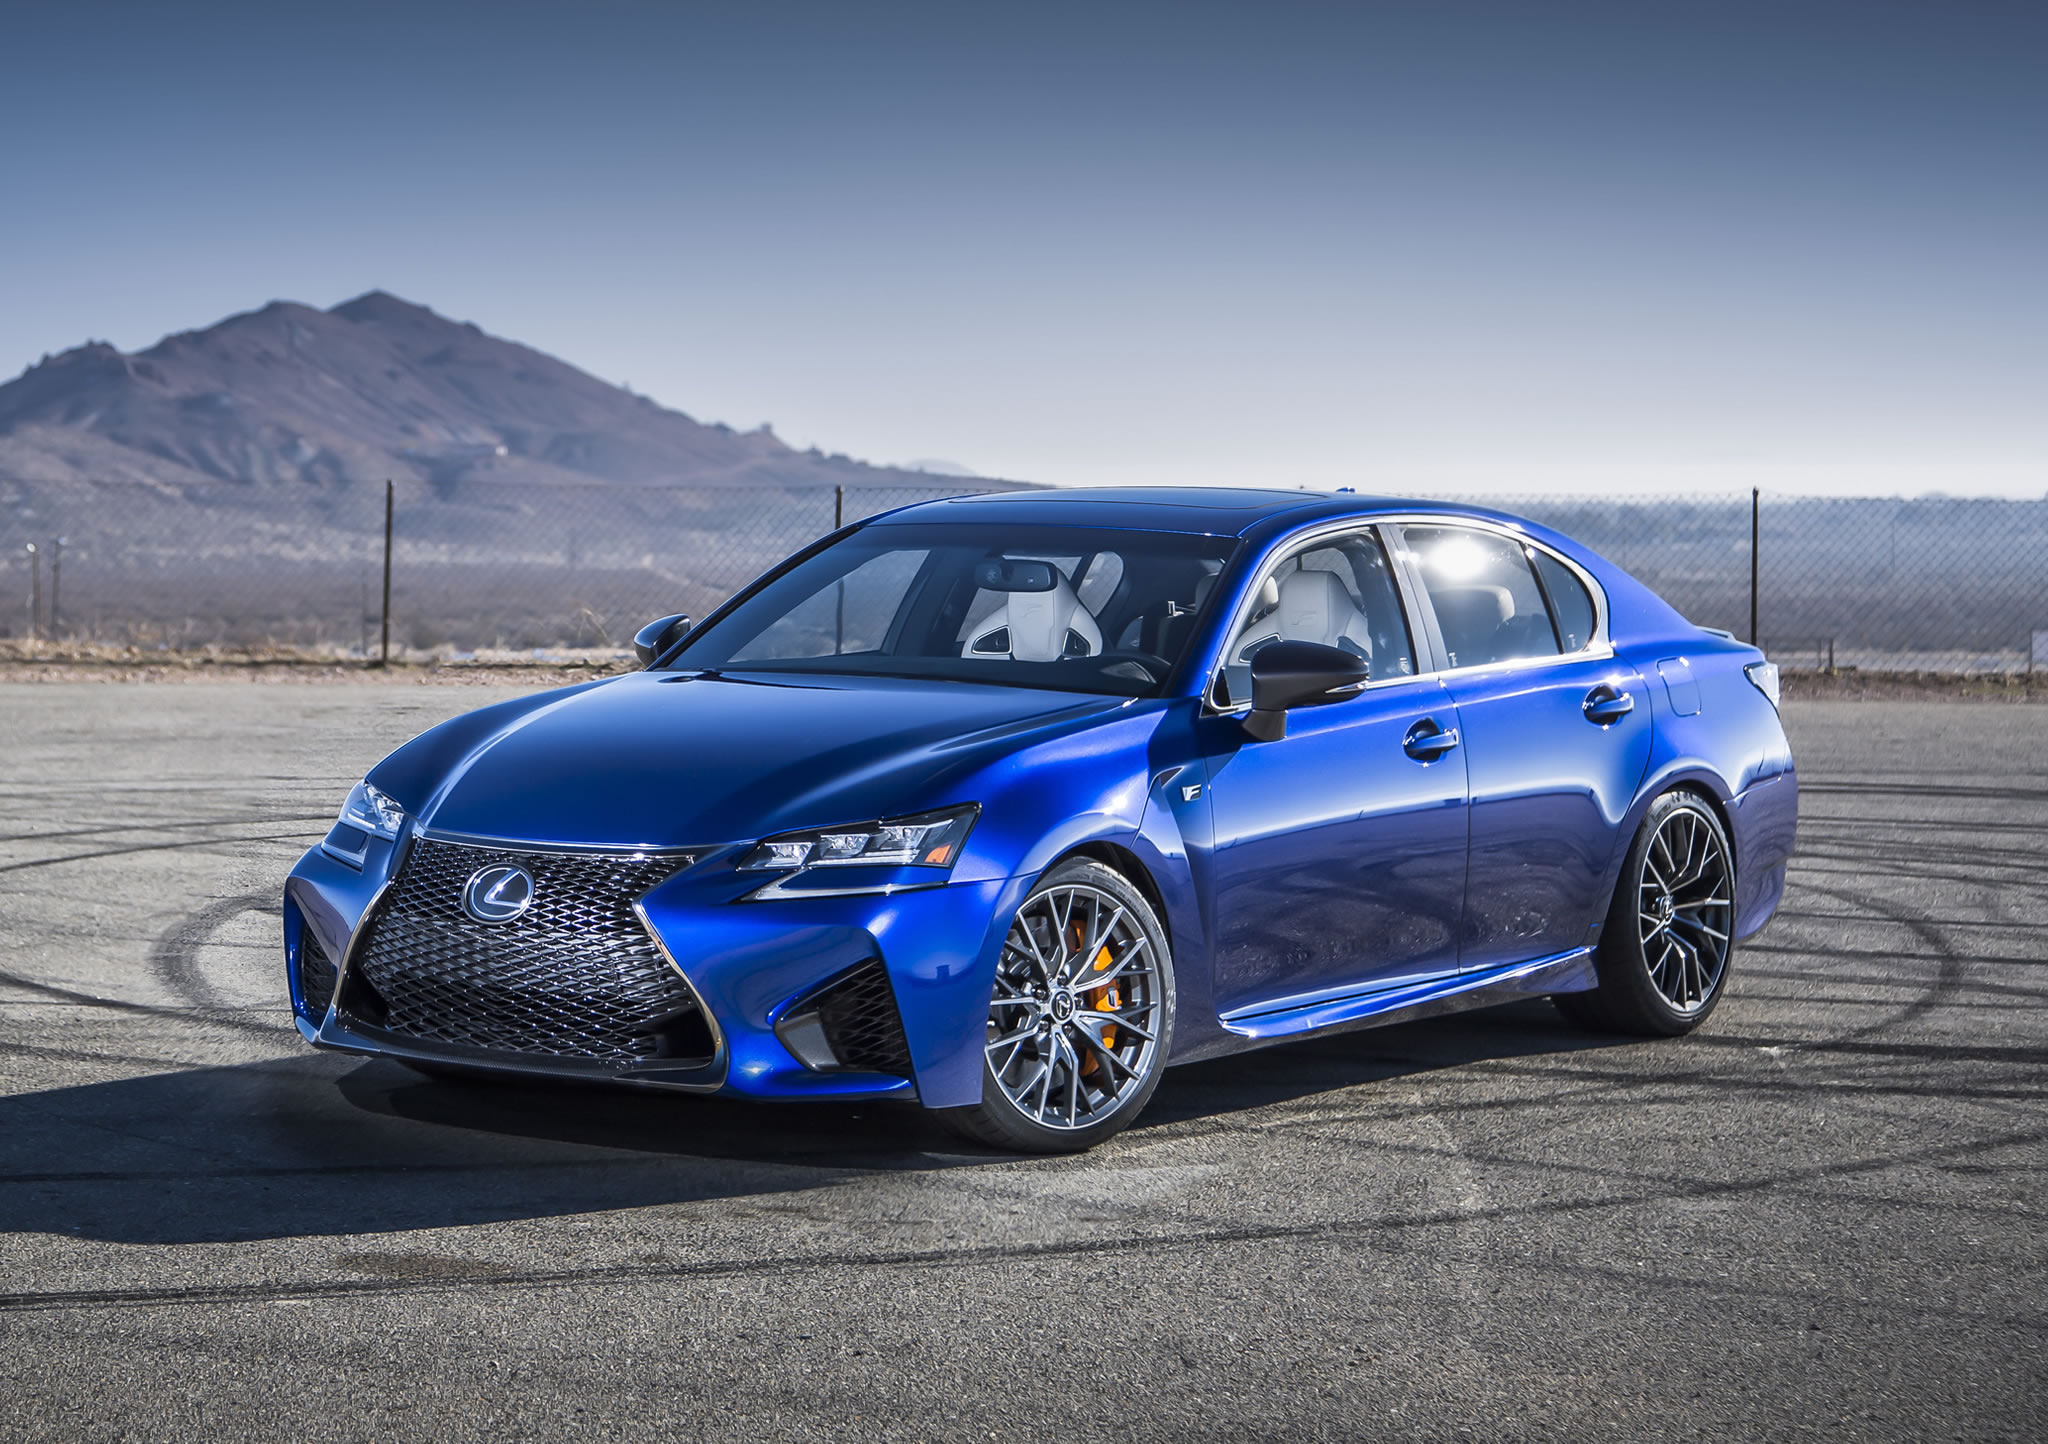 2016 lexus gs f front photo exceed blue metallic color size 2048 x 1444 nr 1 49. Black Bedroom Furniture Sets. Home Design Ideas